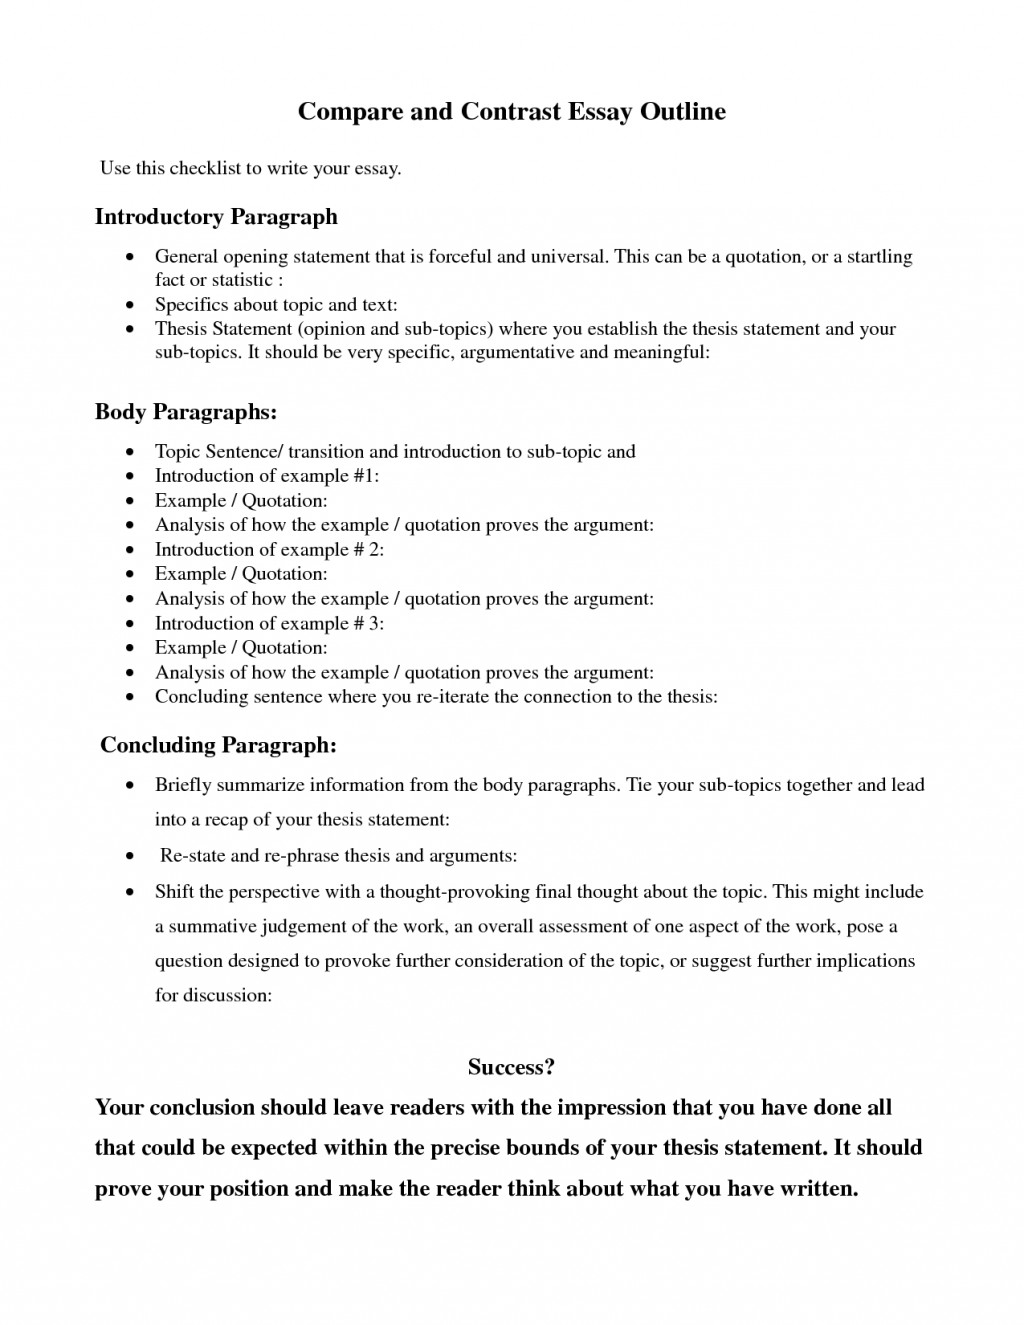 001 Essay Example Comparison And Awful Contrast Topics List Thesis Statement Compare Means Large